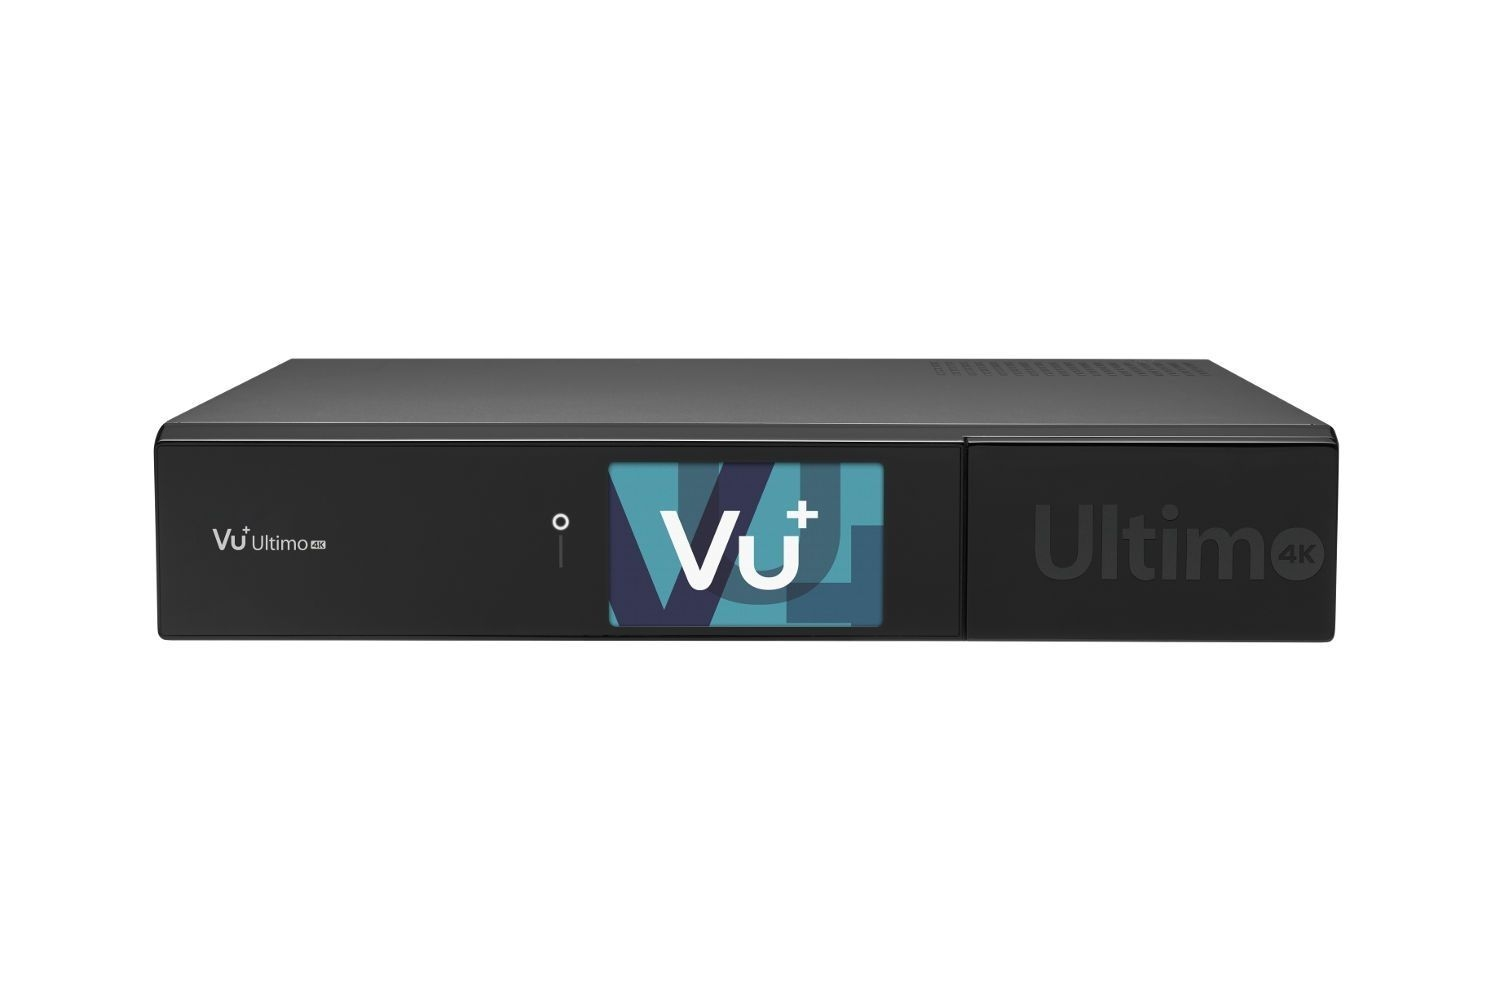 VU+ Ultimo 4K 2x DVB-C FBC / 1x DVB-C/T2 Dual Tuner 8 TB HDD Linux Receiver UHD 2160p